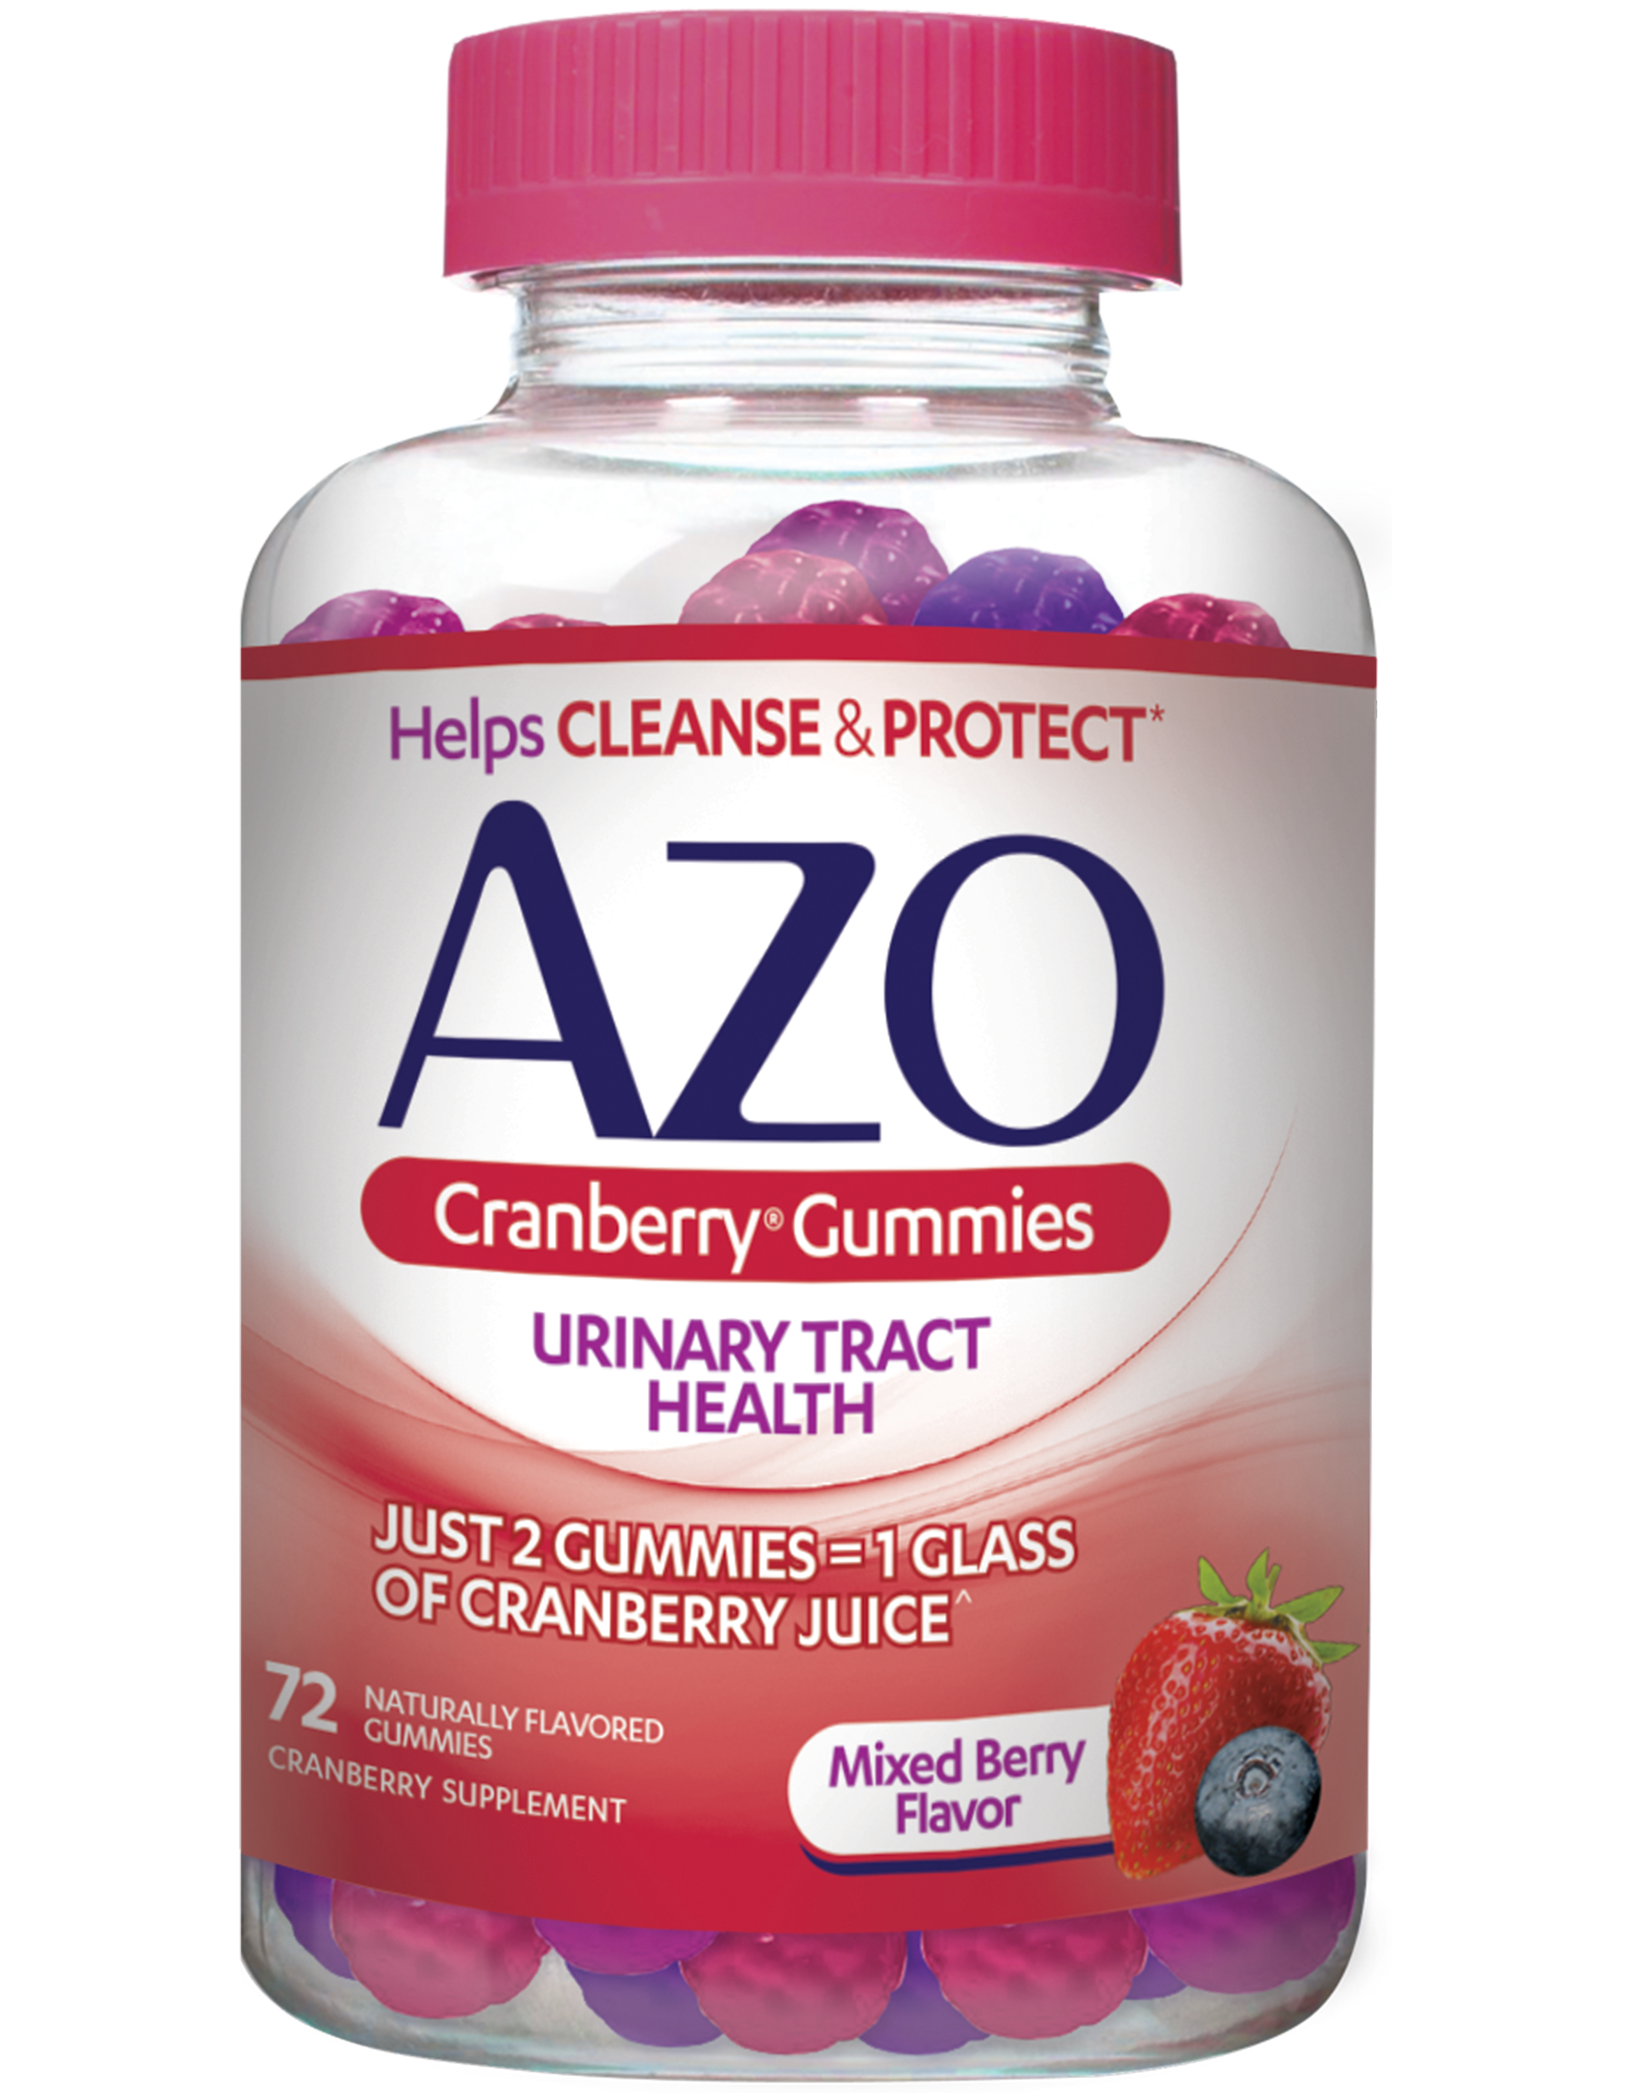 azo cranberry® gummies help to maintain your urinary health*